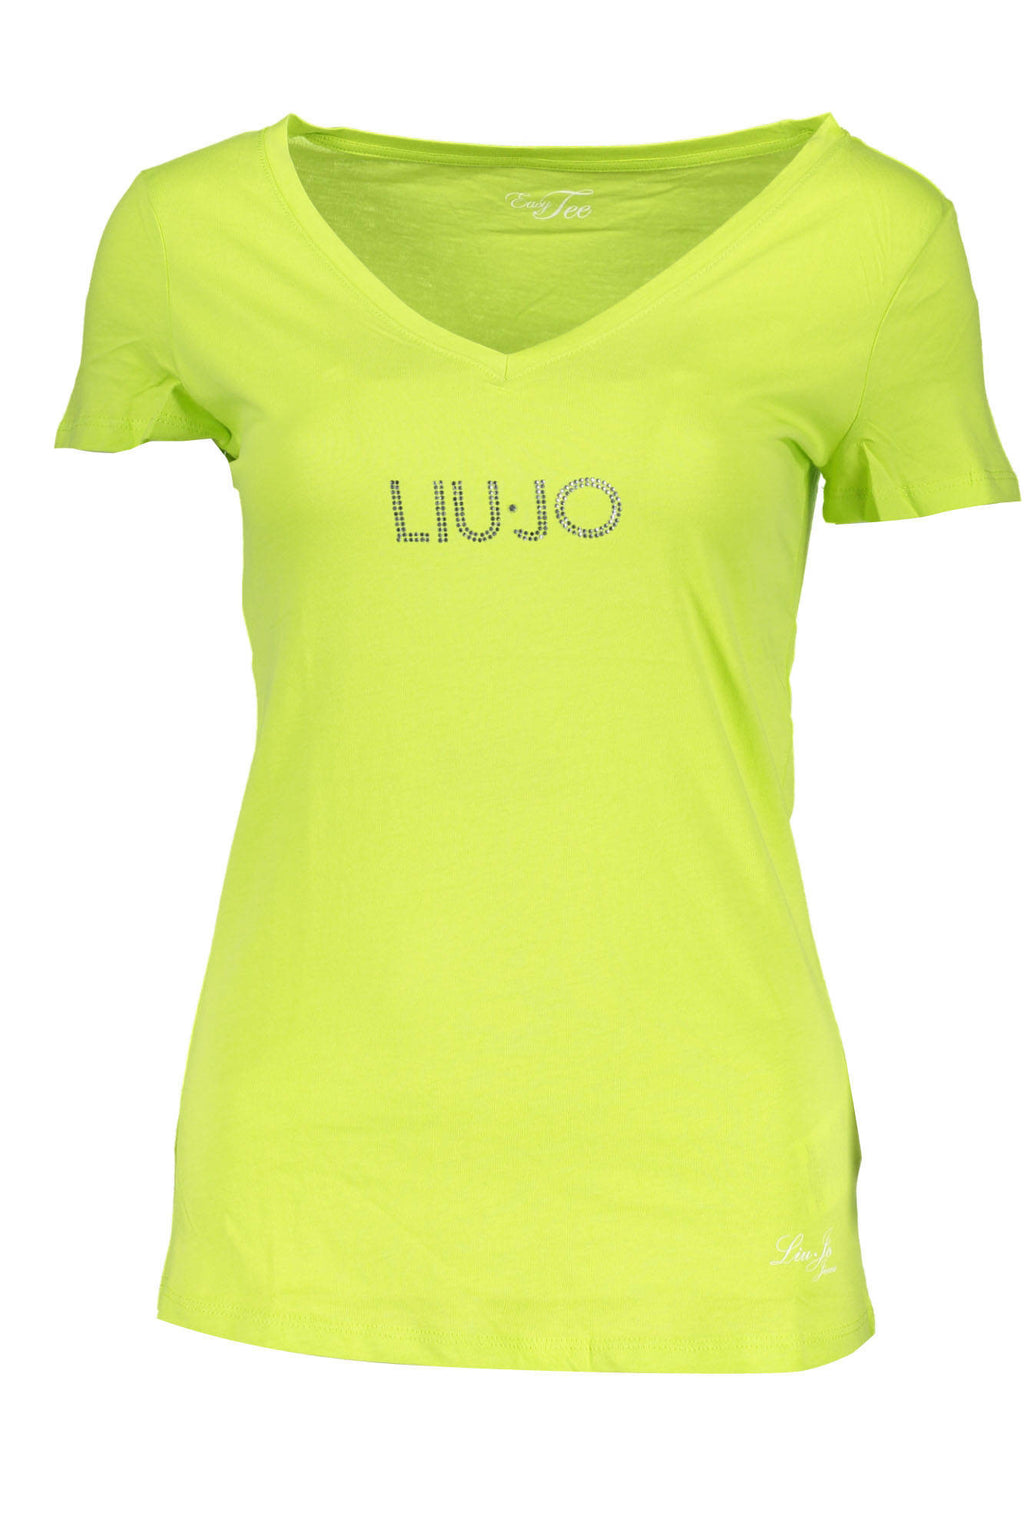 Liu Jo Woman T-Shirt